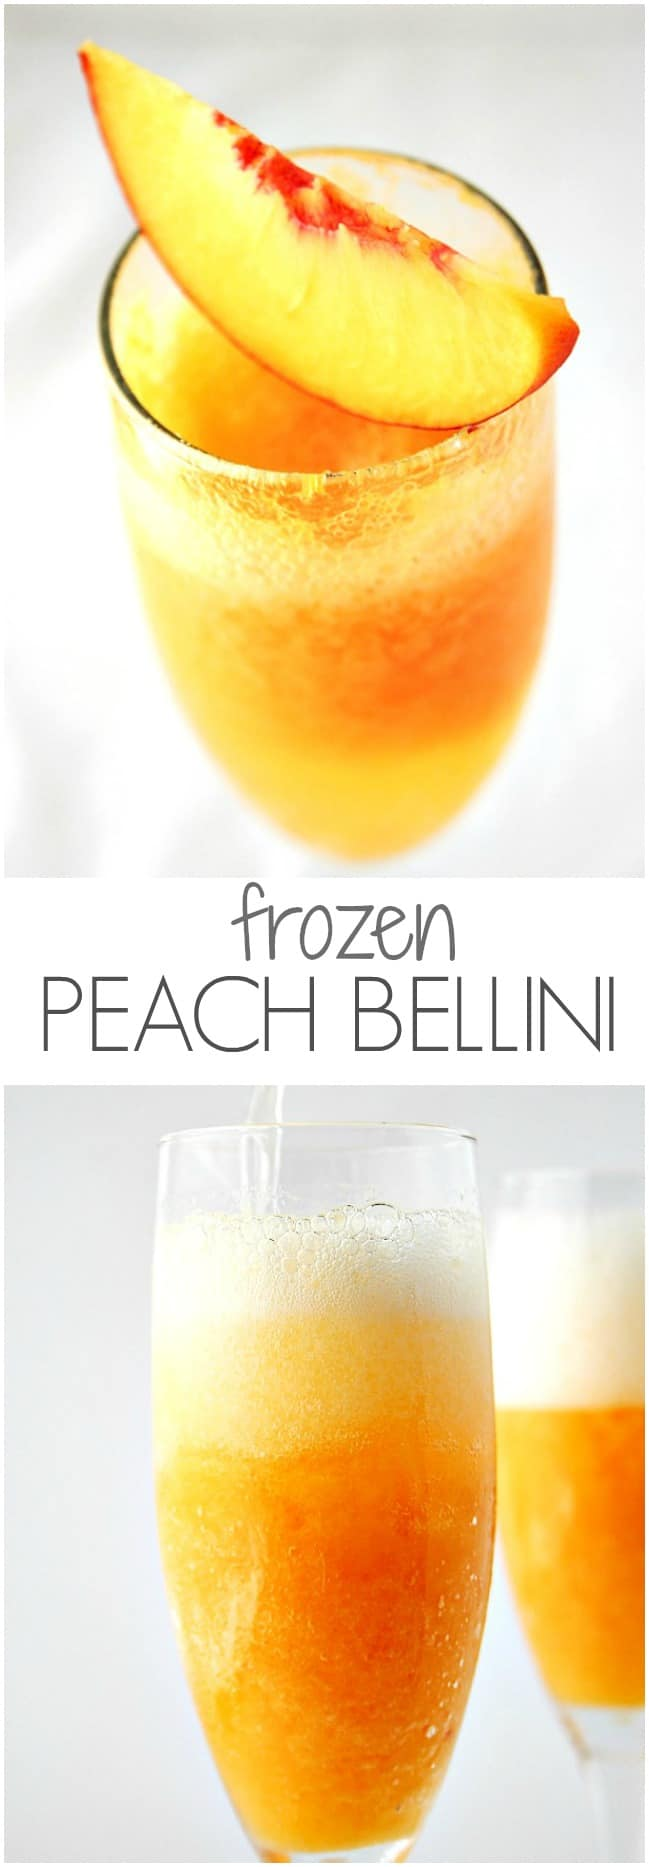 Frozen Peach Bellini jazz up sparkling wine or champagne with frozen peach puree @crunchycreamysw Frozen Peach Bellini